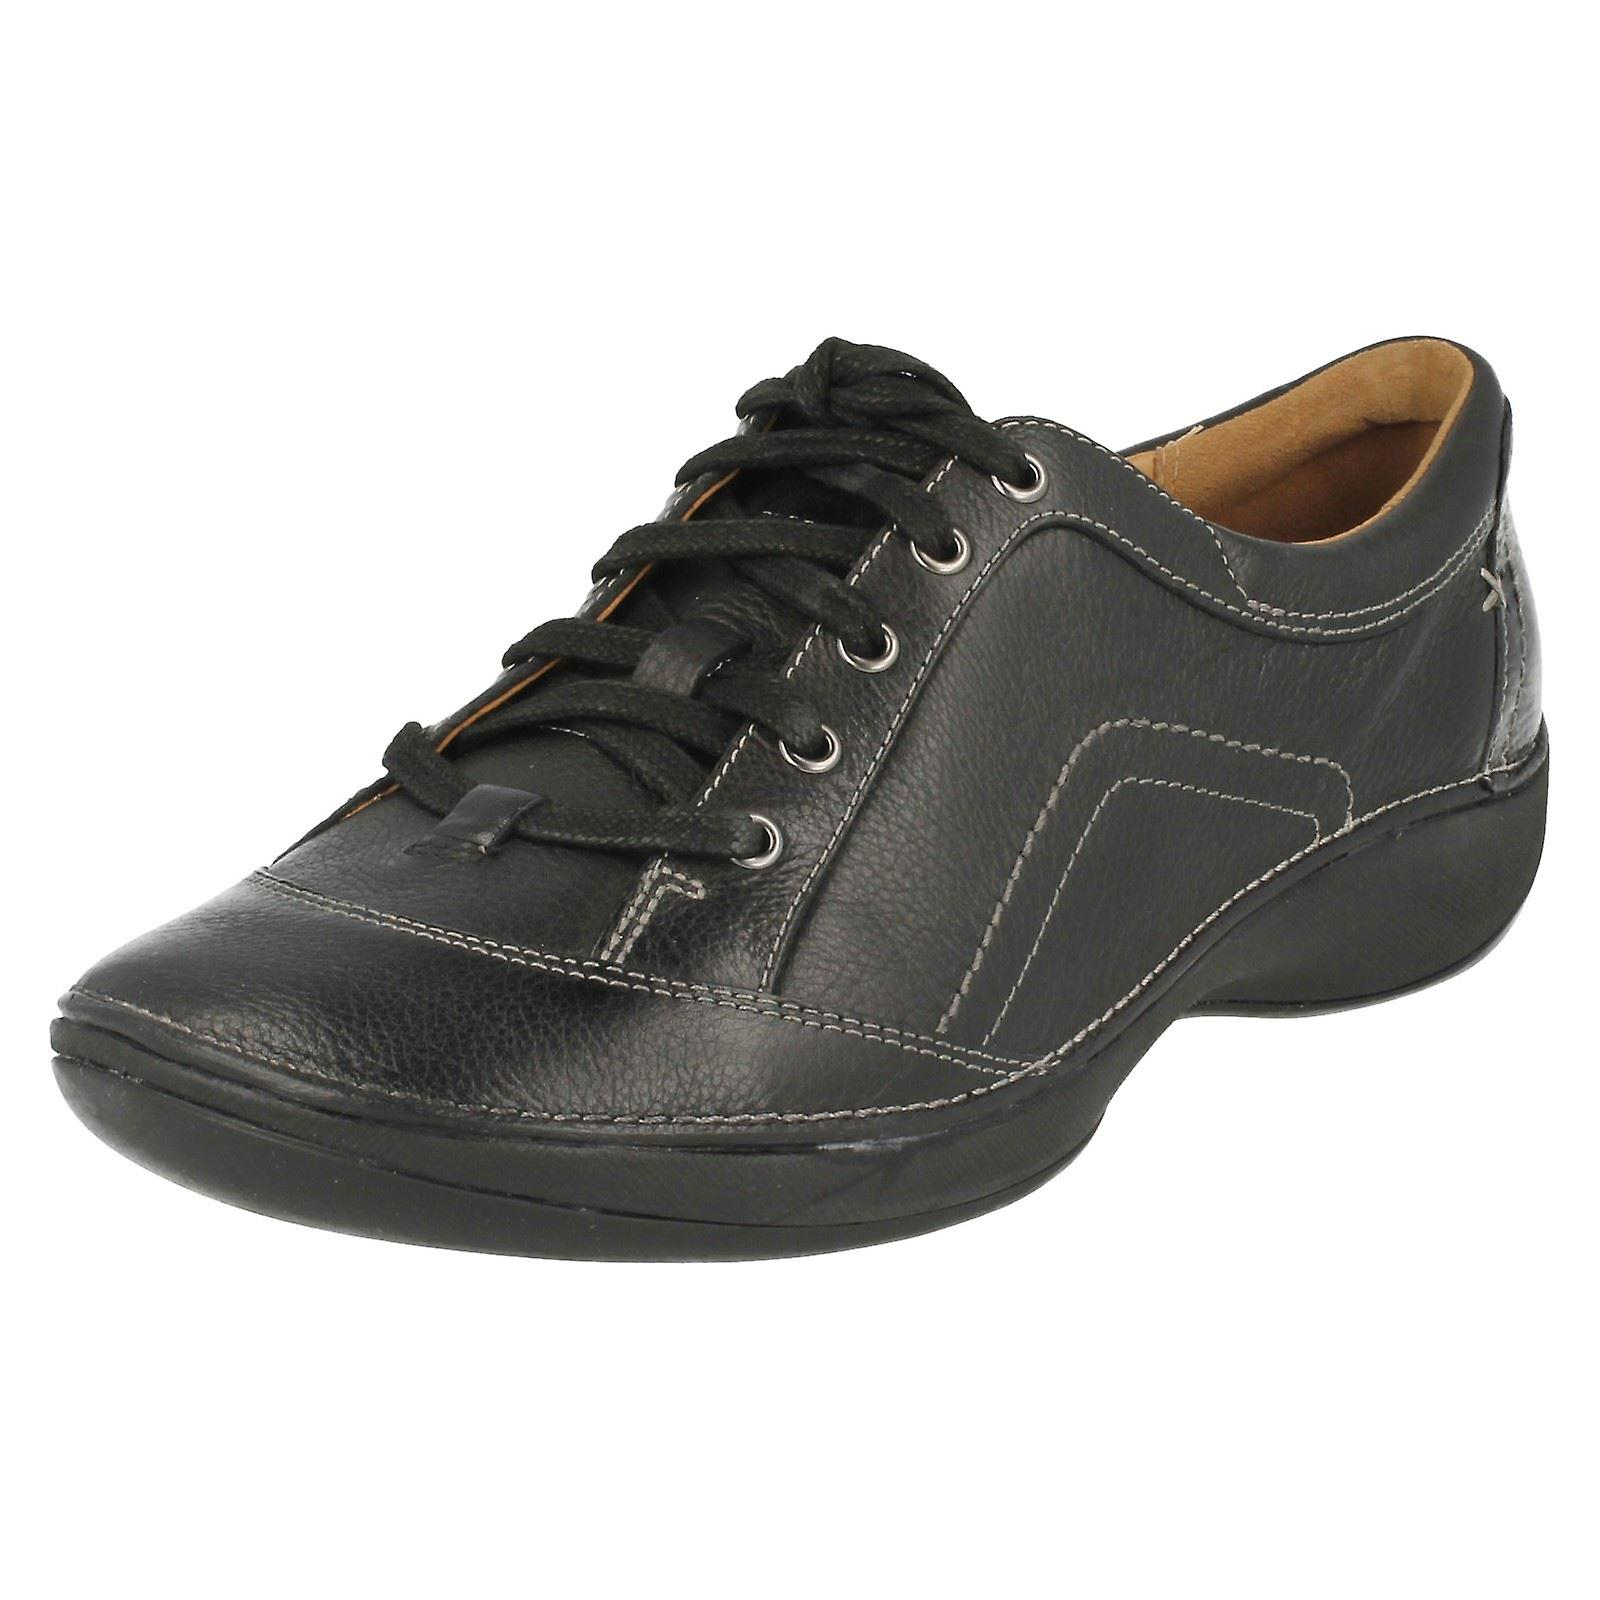 Ladies Clarks Lace Up Flat Shoes Fairlie Spring y9SYl